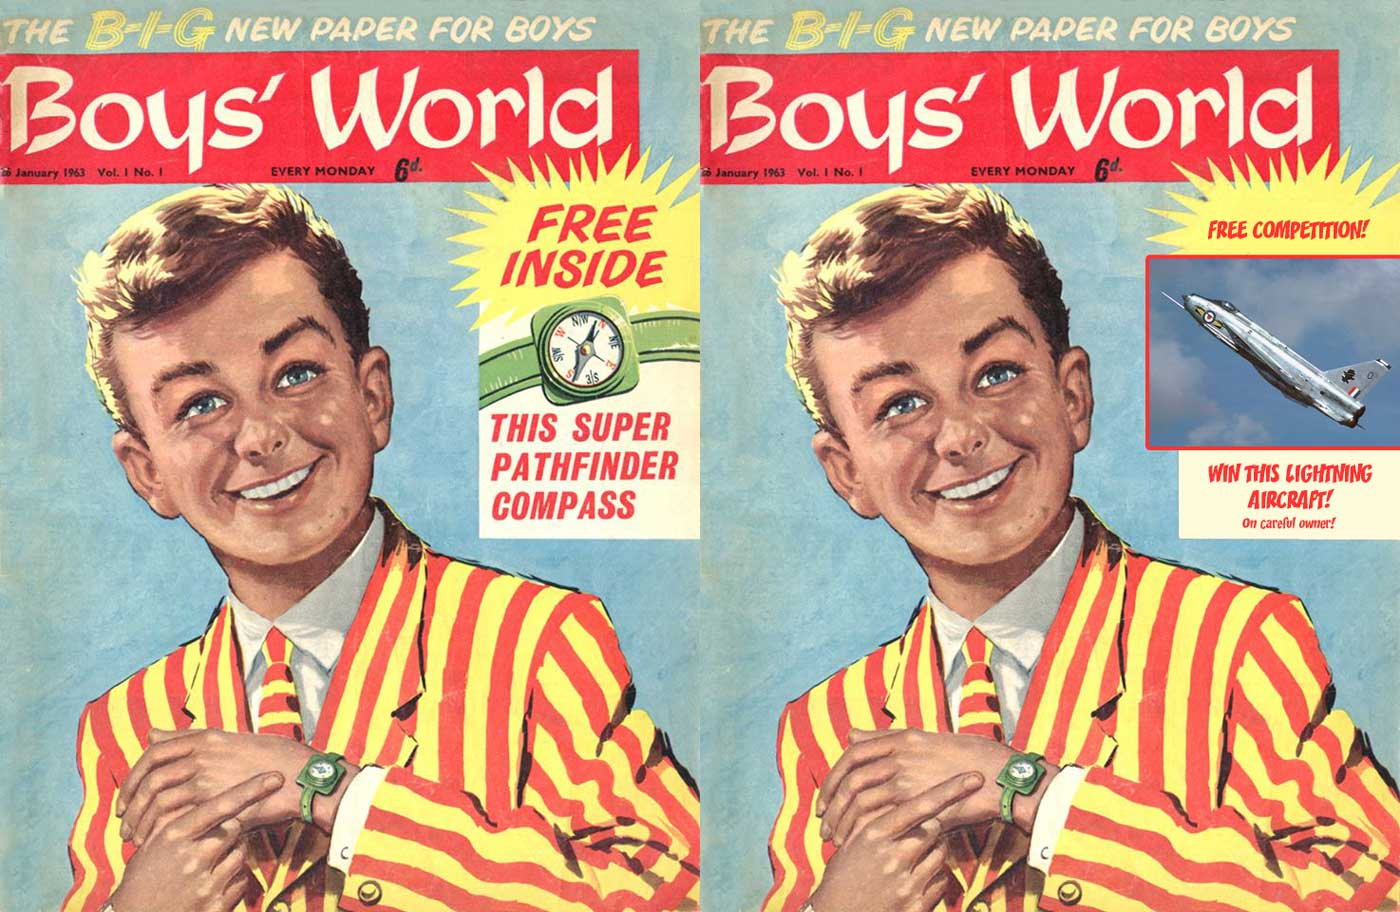 A re-imagining of Jim Kenner's possible cover for the first issue of Boys' World, alongside the actual cover (left), had Jim Kenner had his way...